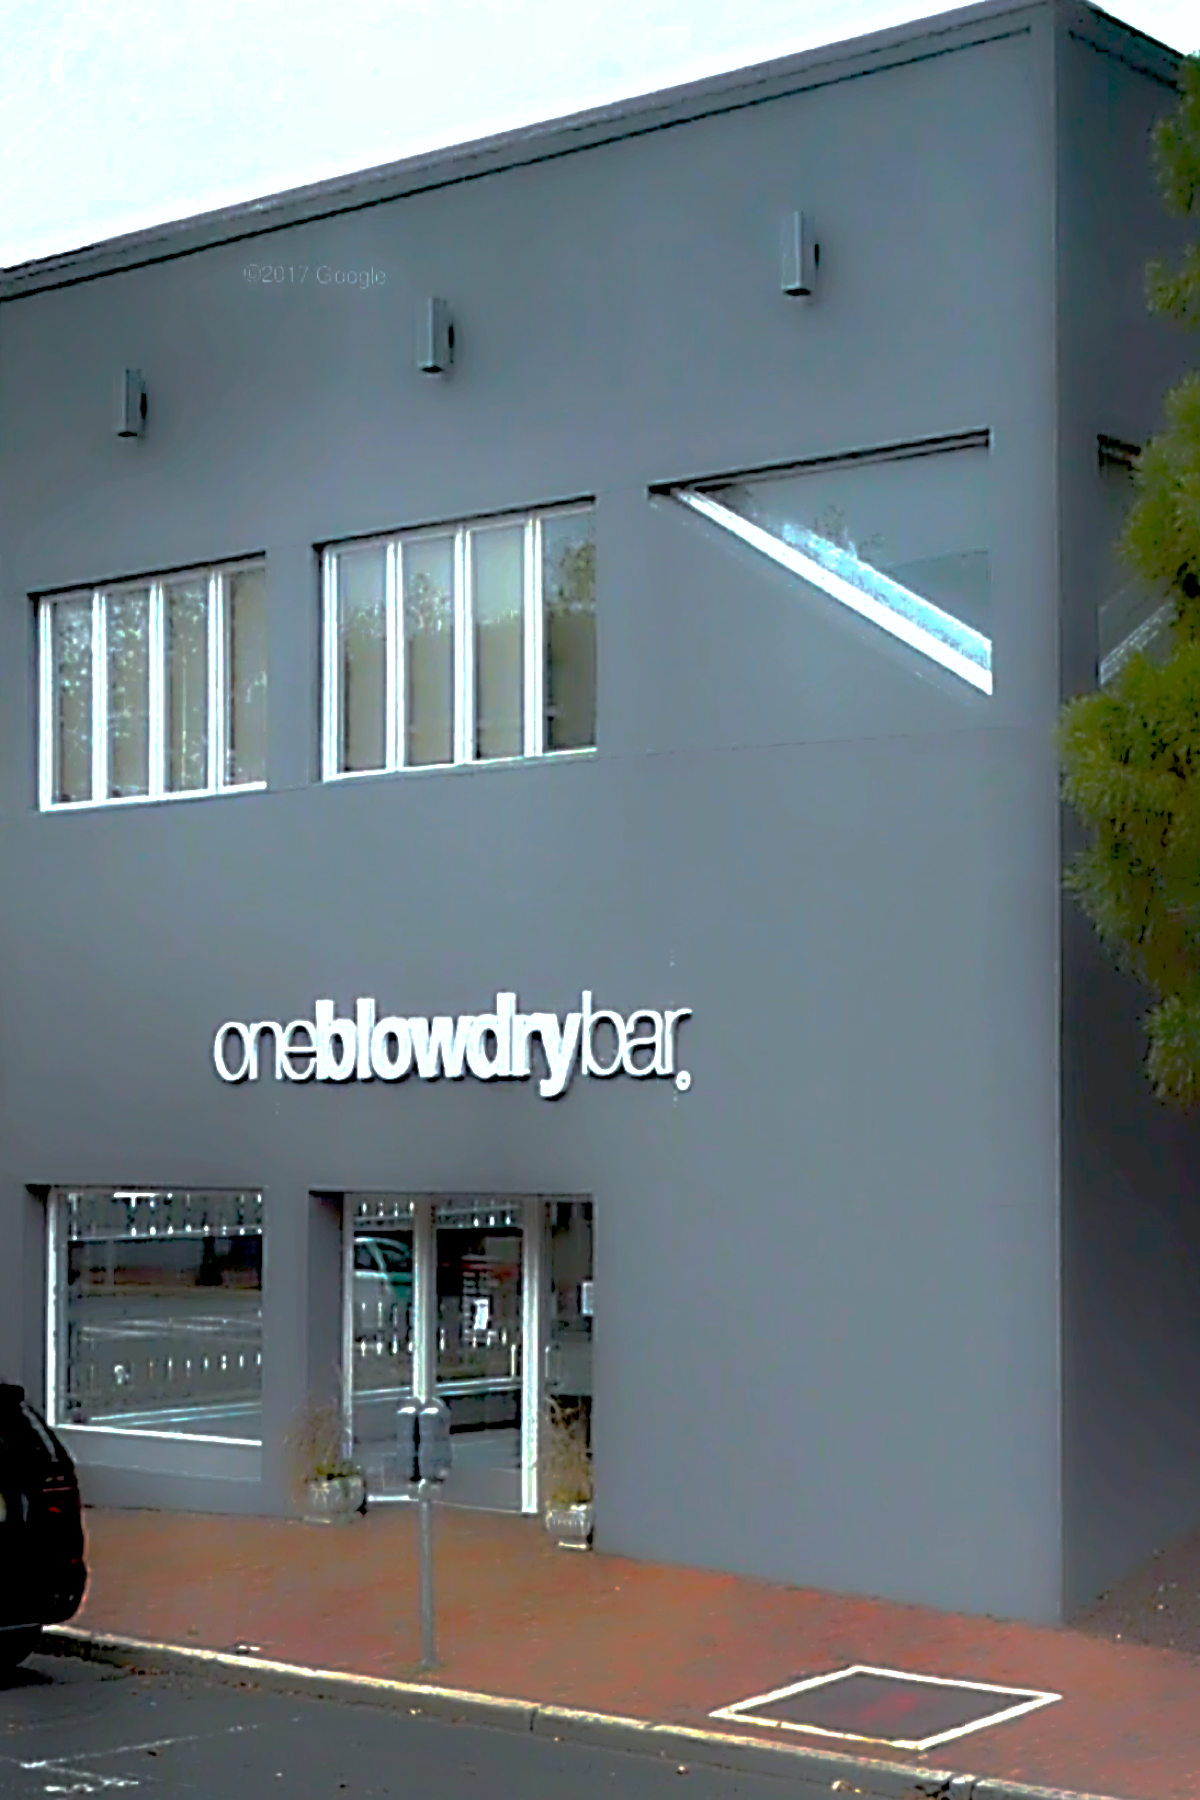 oneblowdrybar, blow dry bar blowout hair salon location in Red Bank, New Jersey